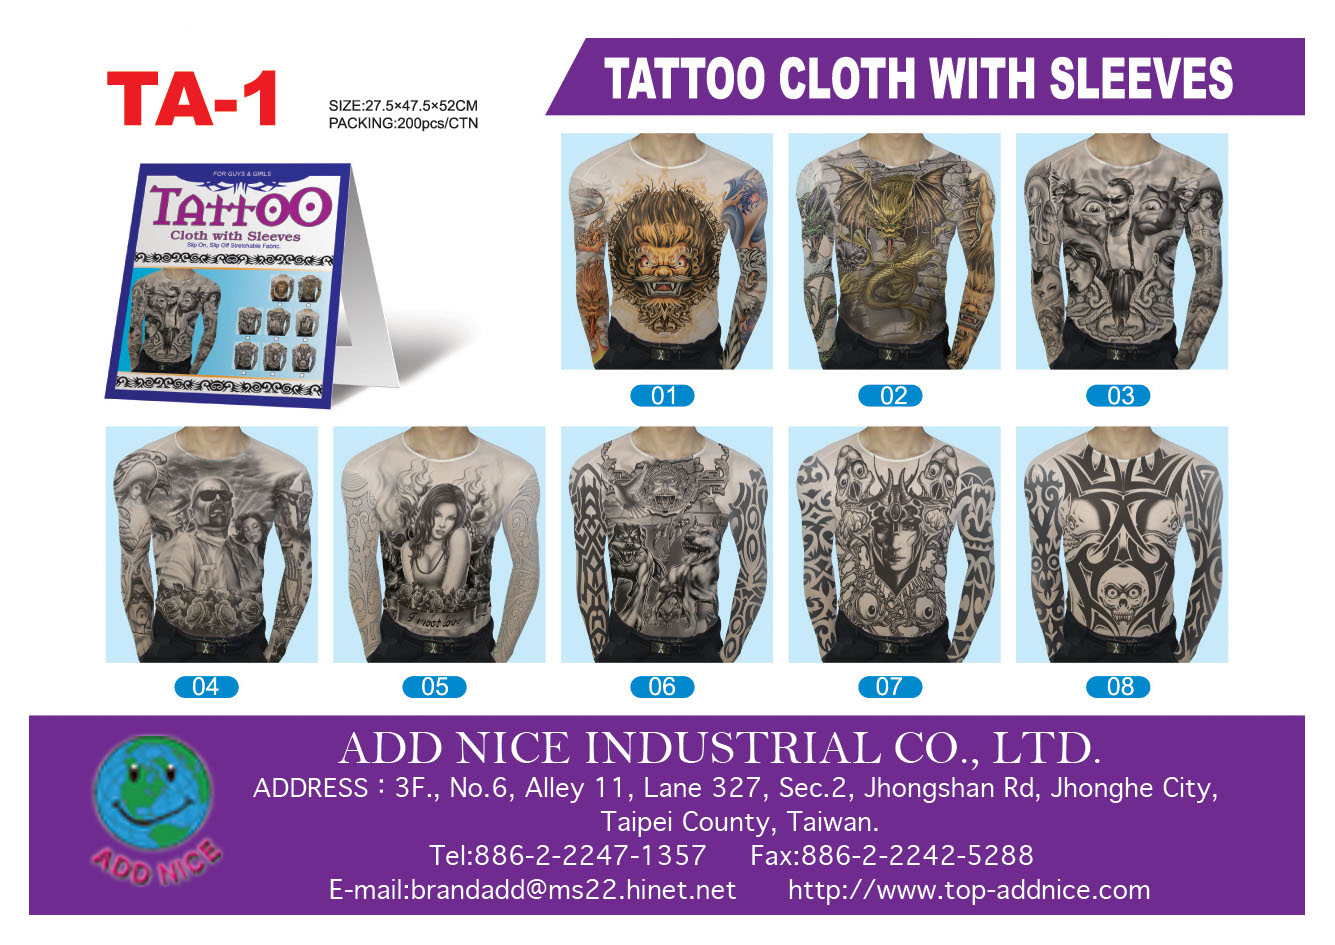 Tattoo Tee with sleevesnovelty products gift promotion items